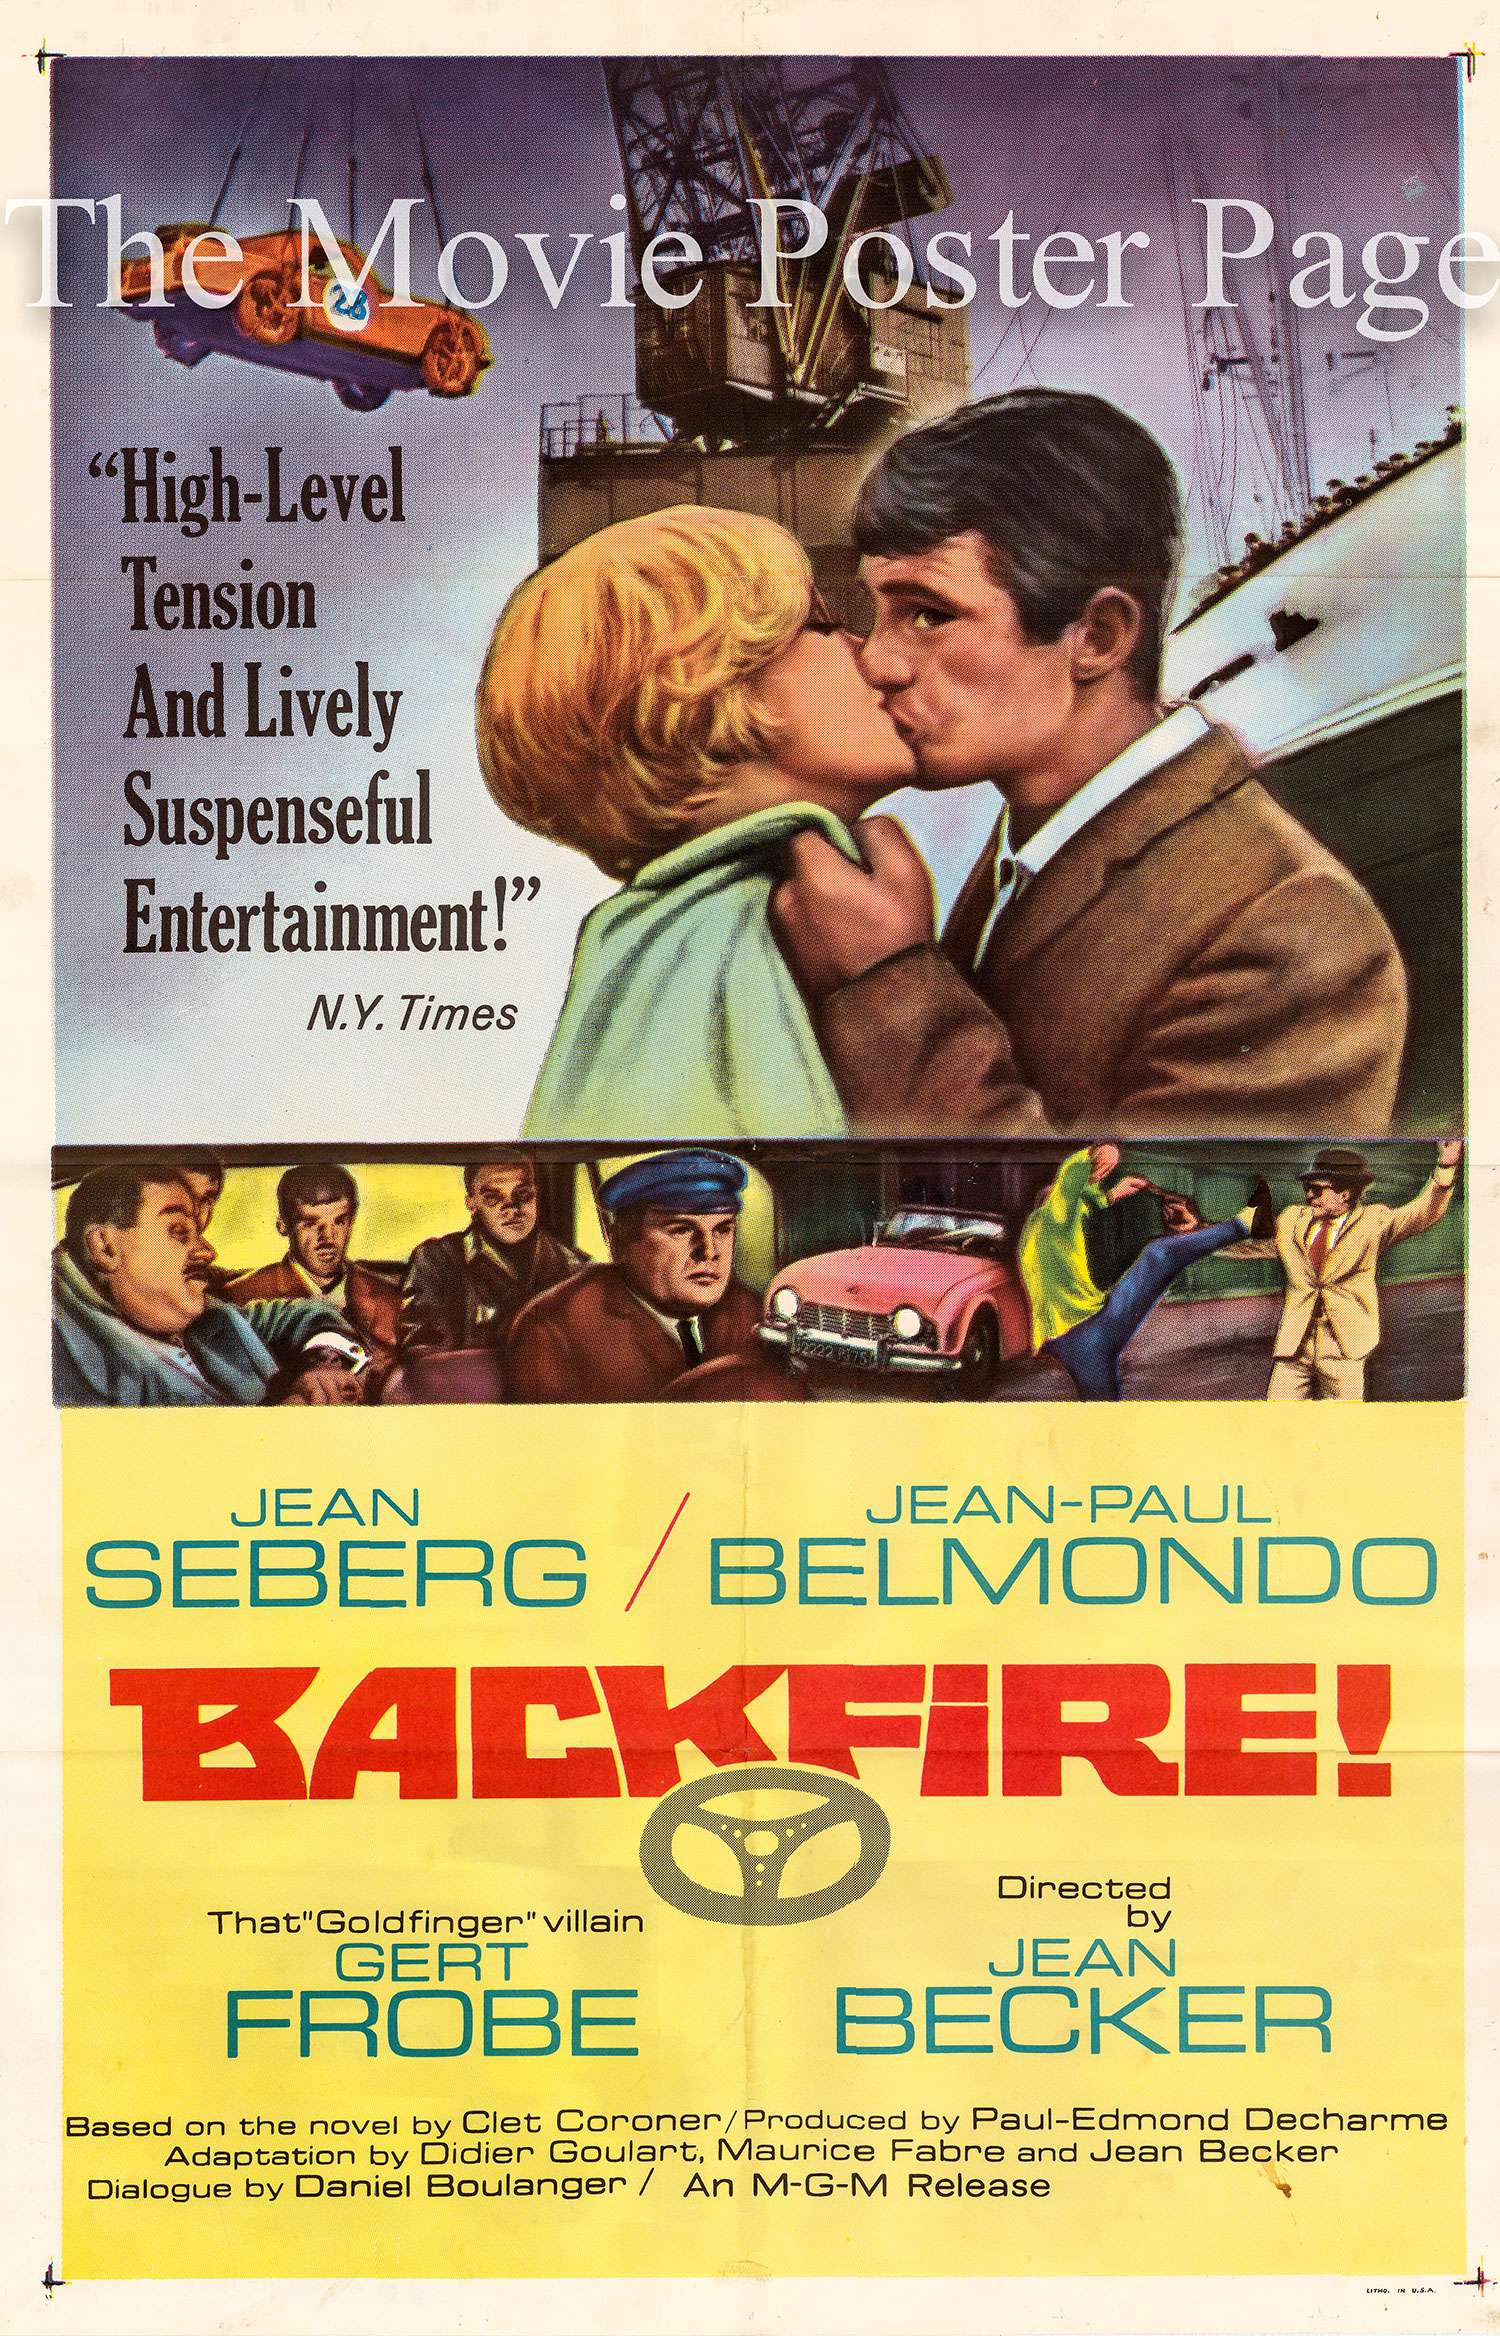 Pictured is a US one-sheet poster for the 1965 Jean Becker film Backfire starring Jean-Paul Belmondo.